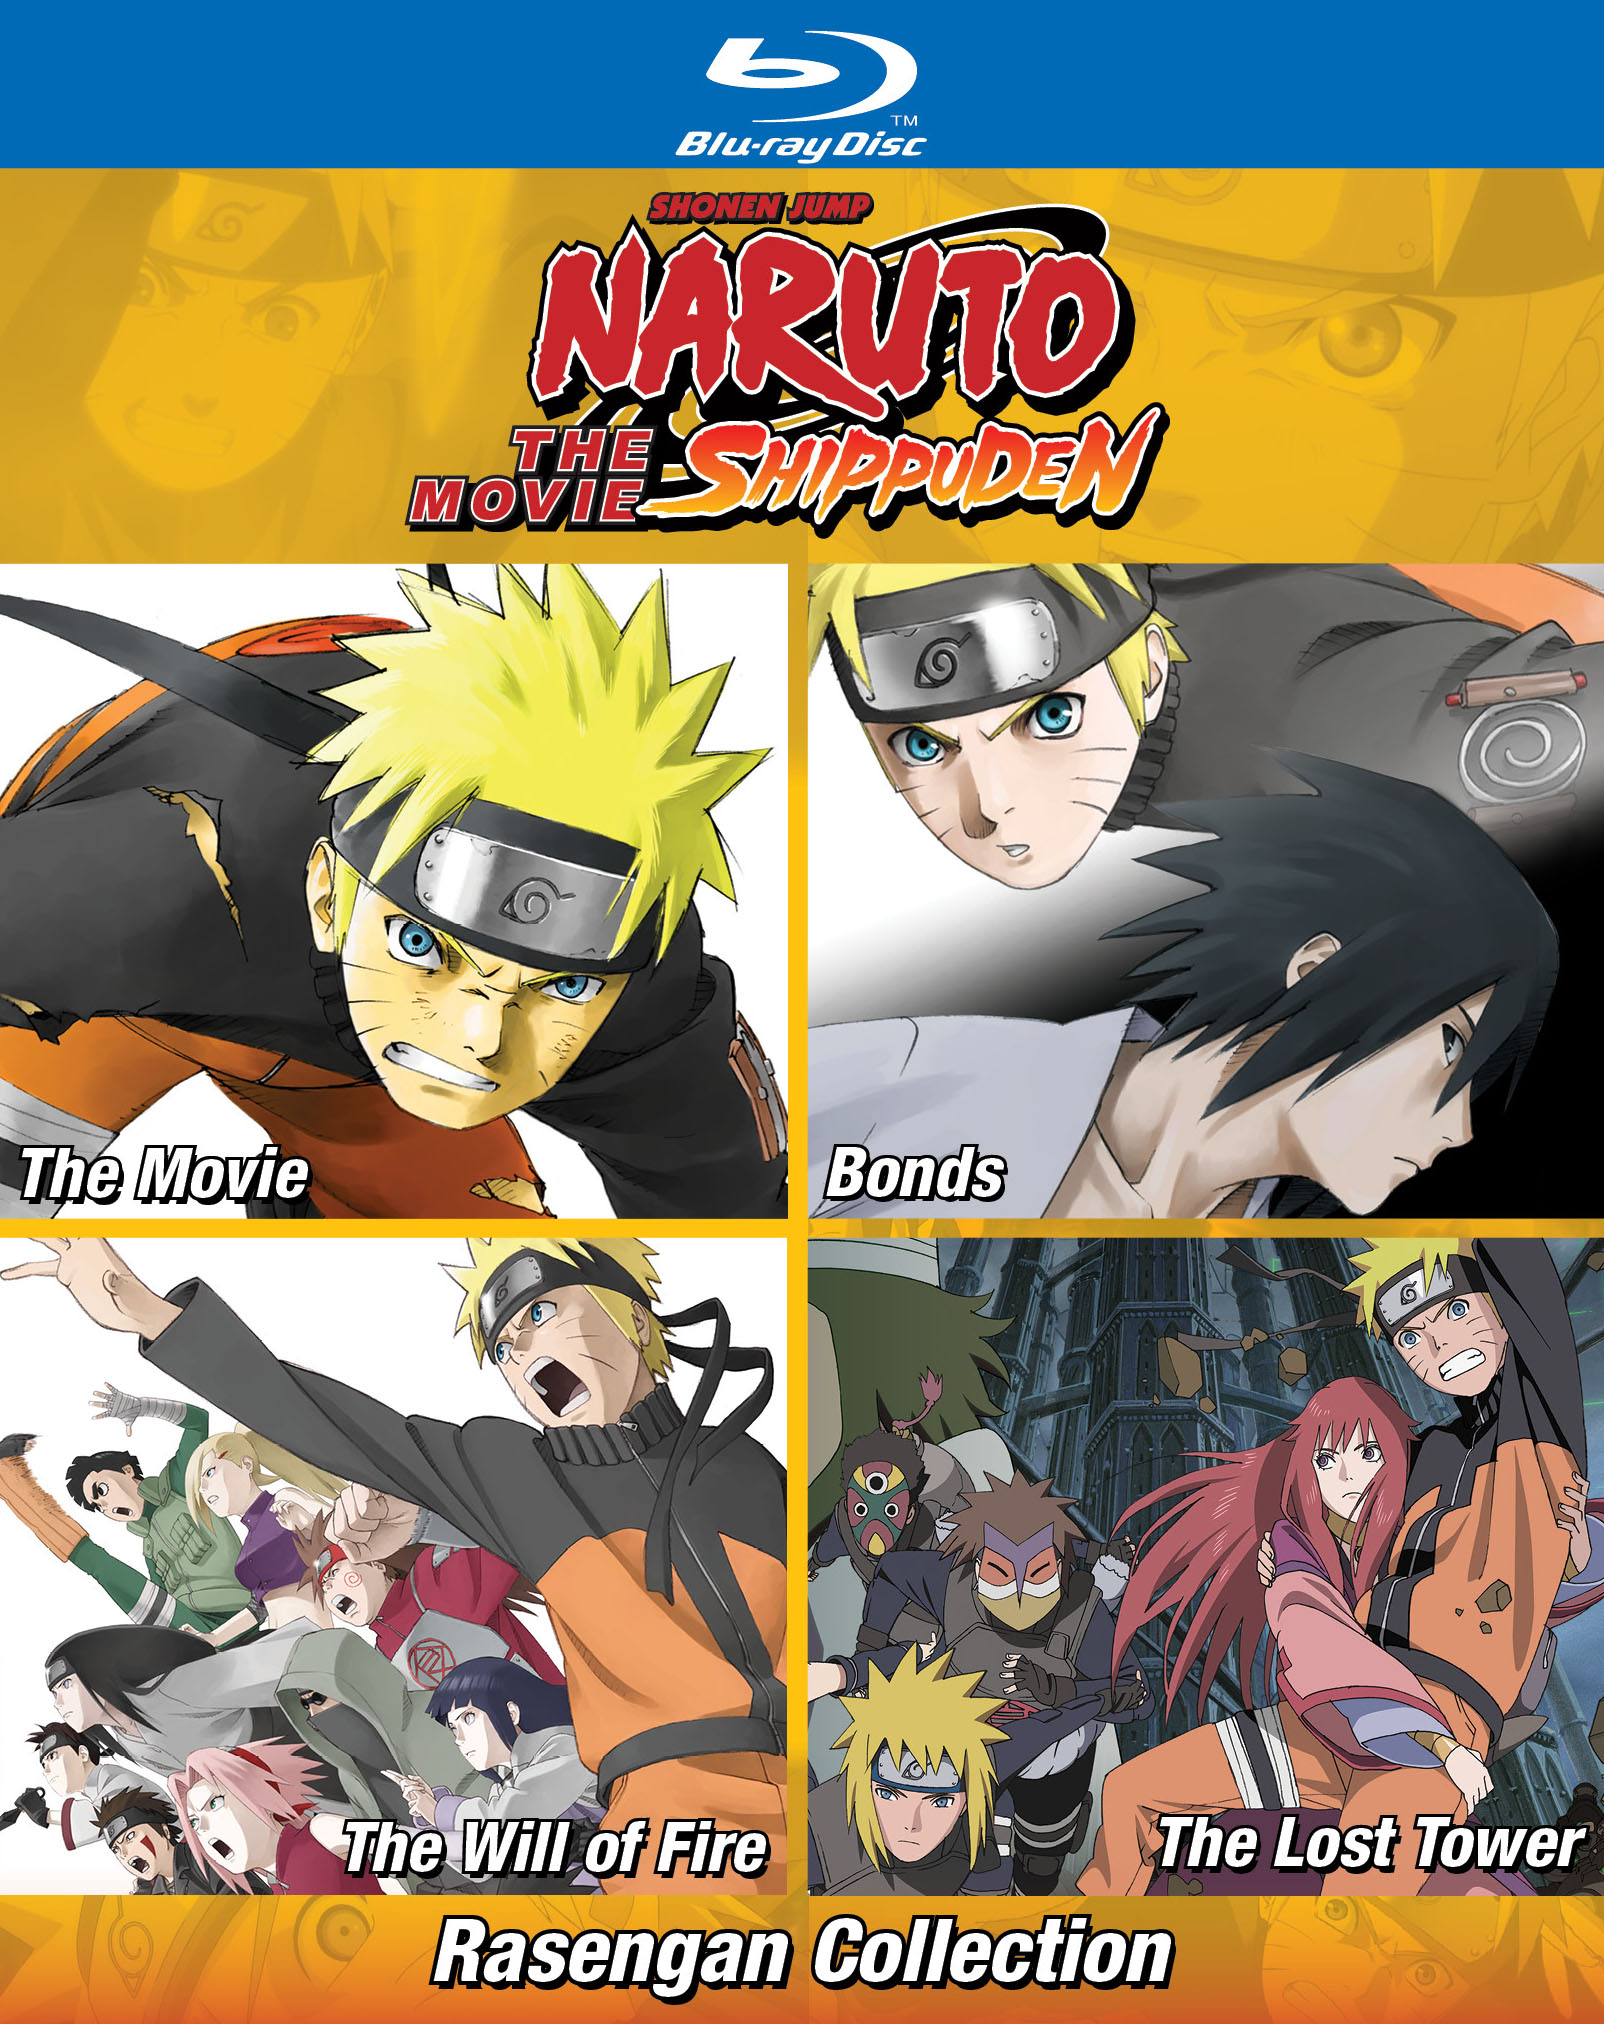 Featuring the first film bonds the will of fire and the last tower naruto uzumakis cinematic adventures can now be viewed in beautiful hd for the first